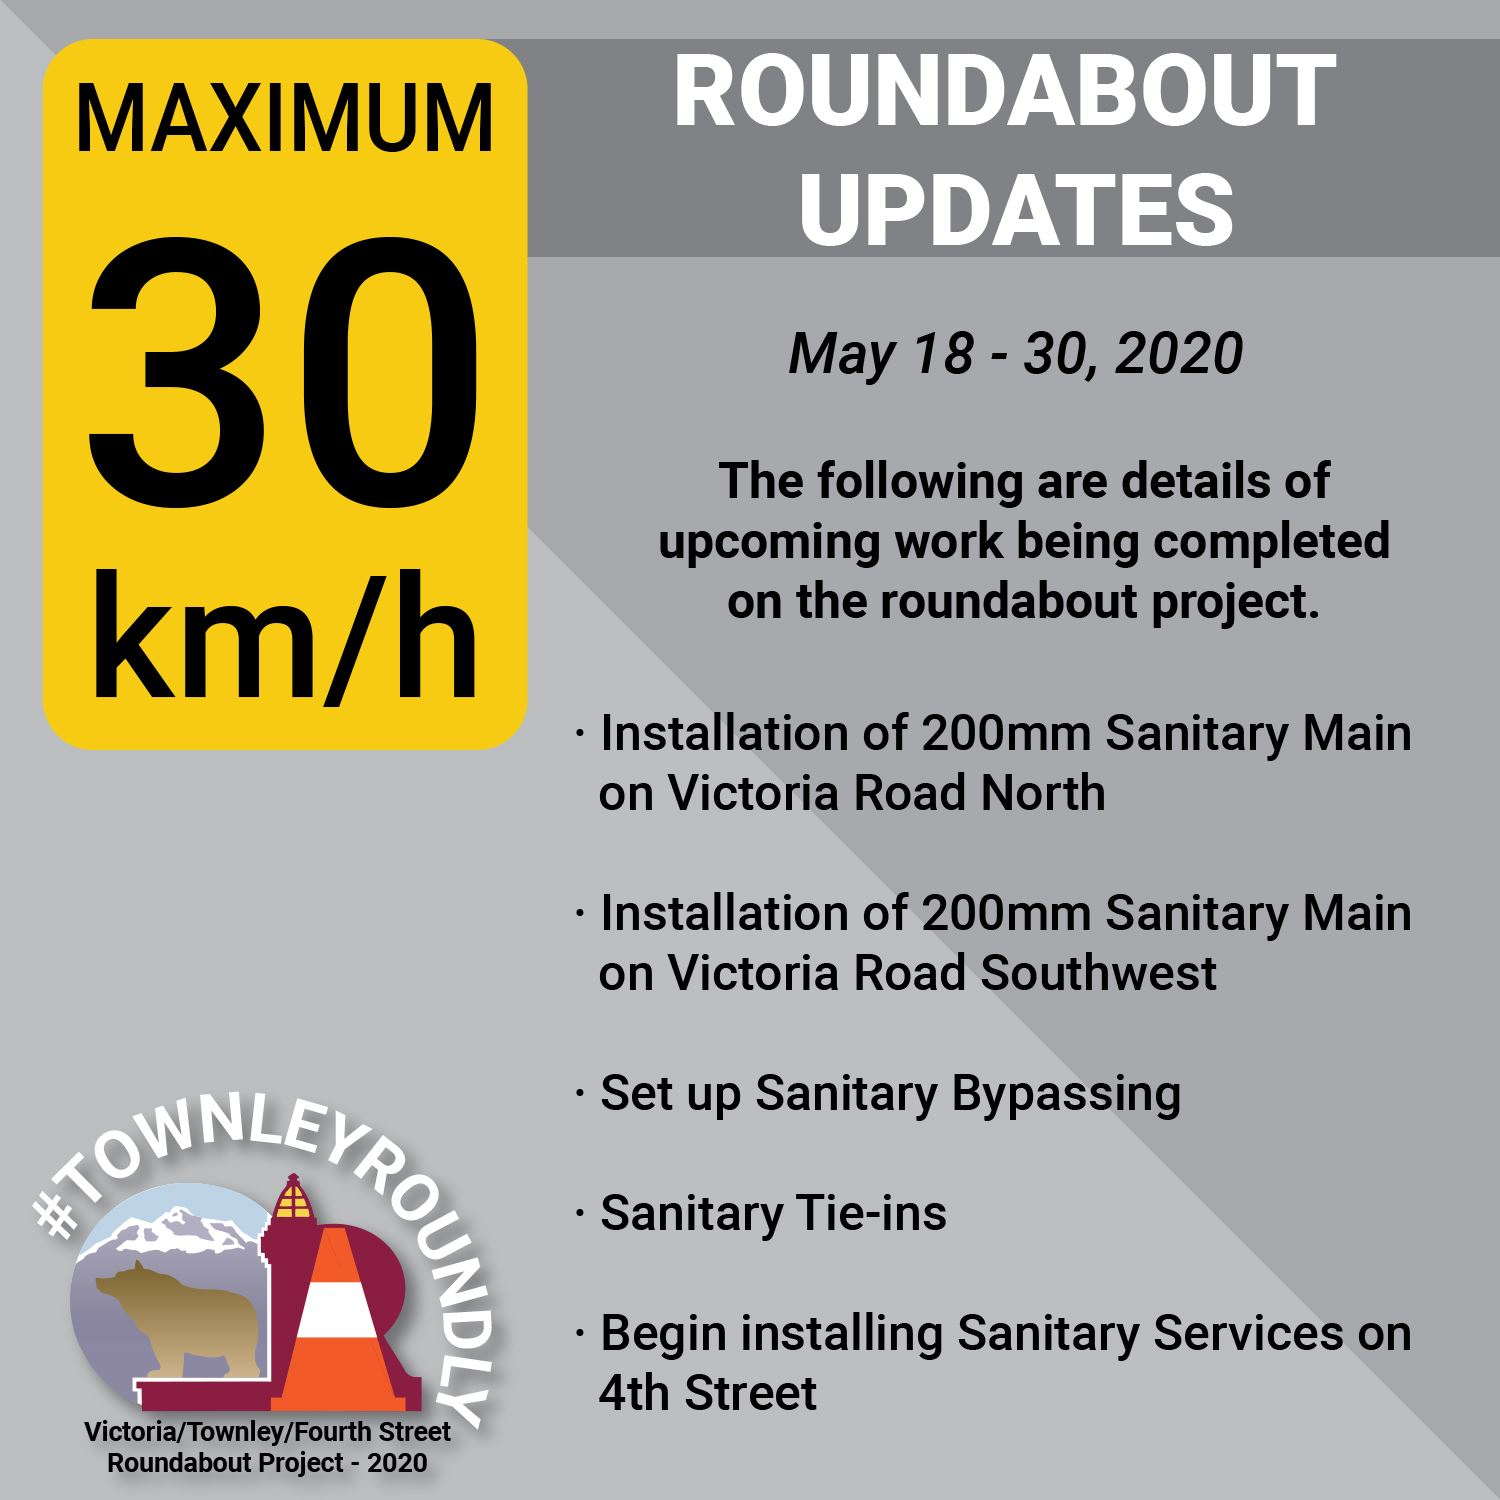 Roundabout_Construction Update - May 18-30